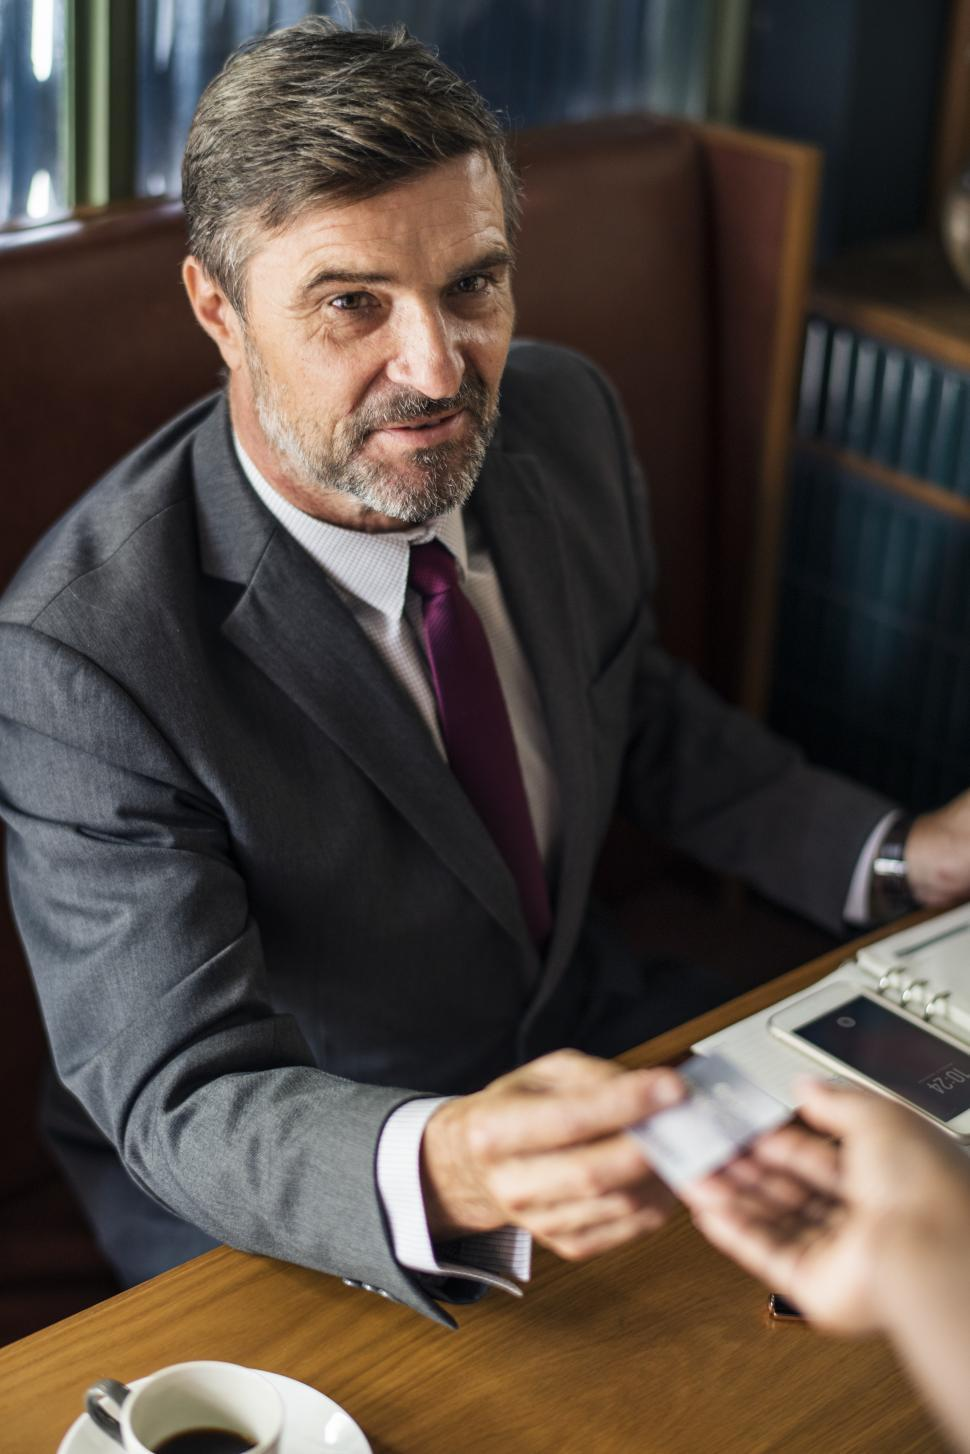 Download Free Stock HD Photo of A mature business man paying with his card at a cafe Online